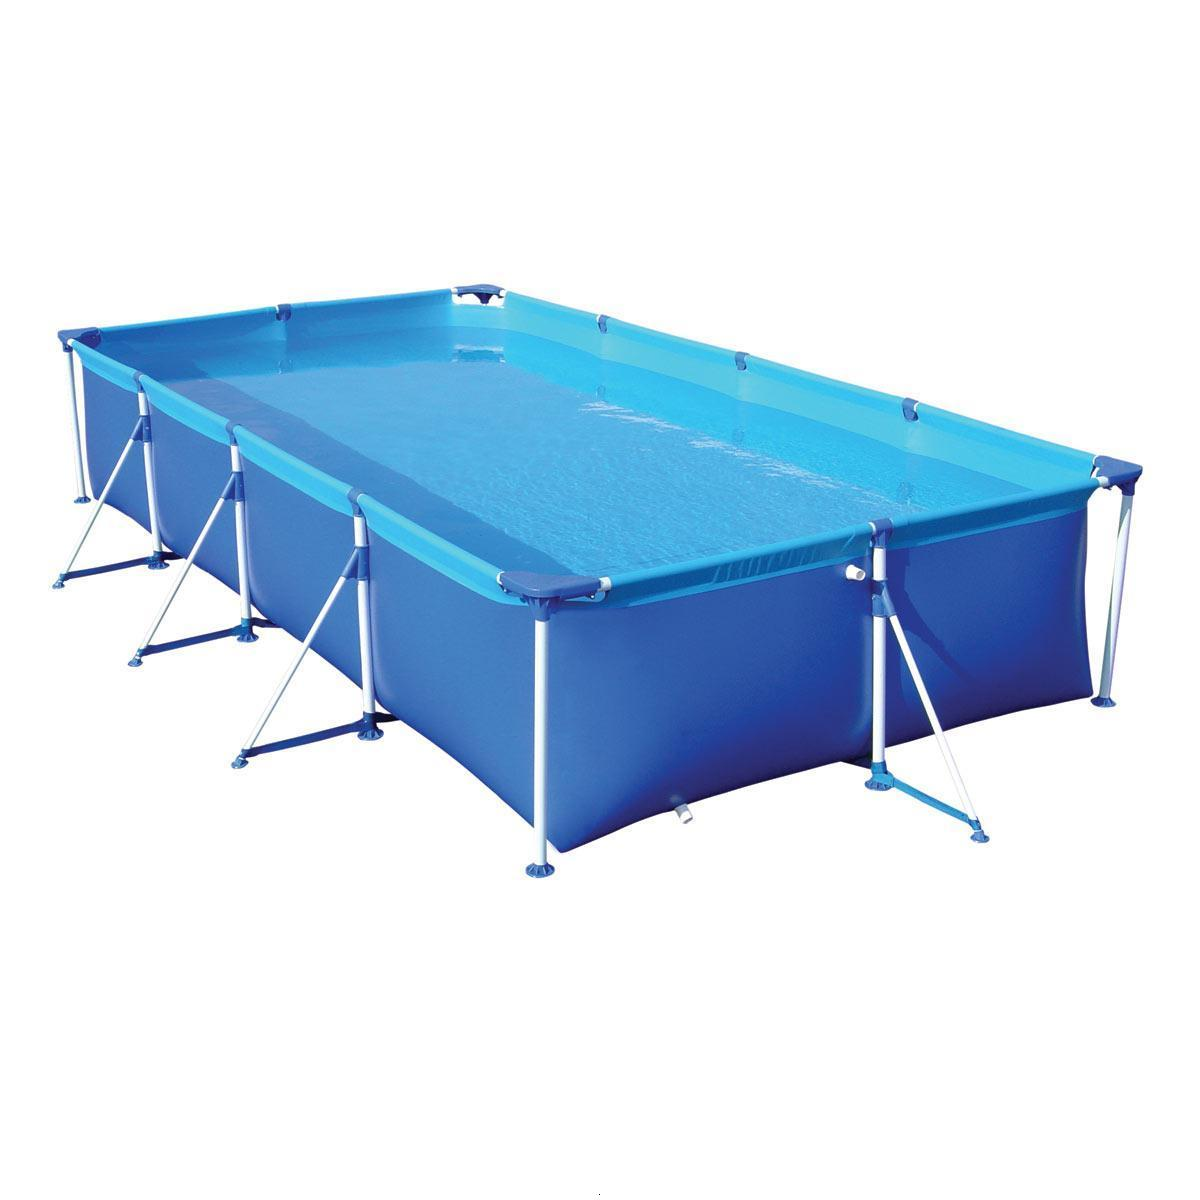 Intex Piscina Oval